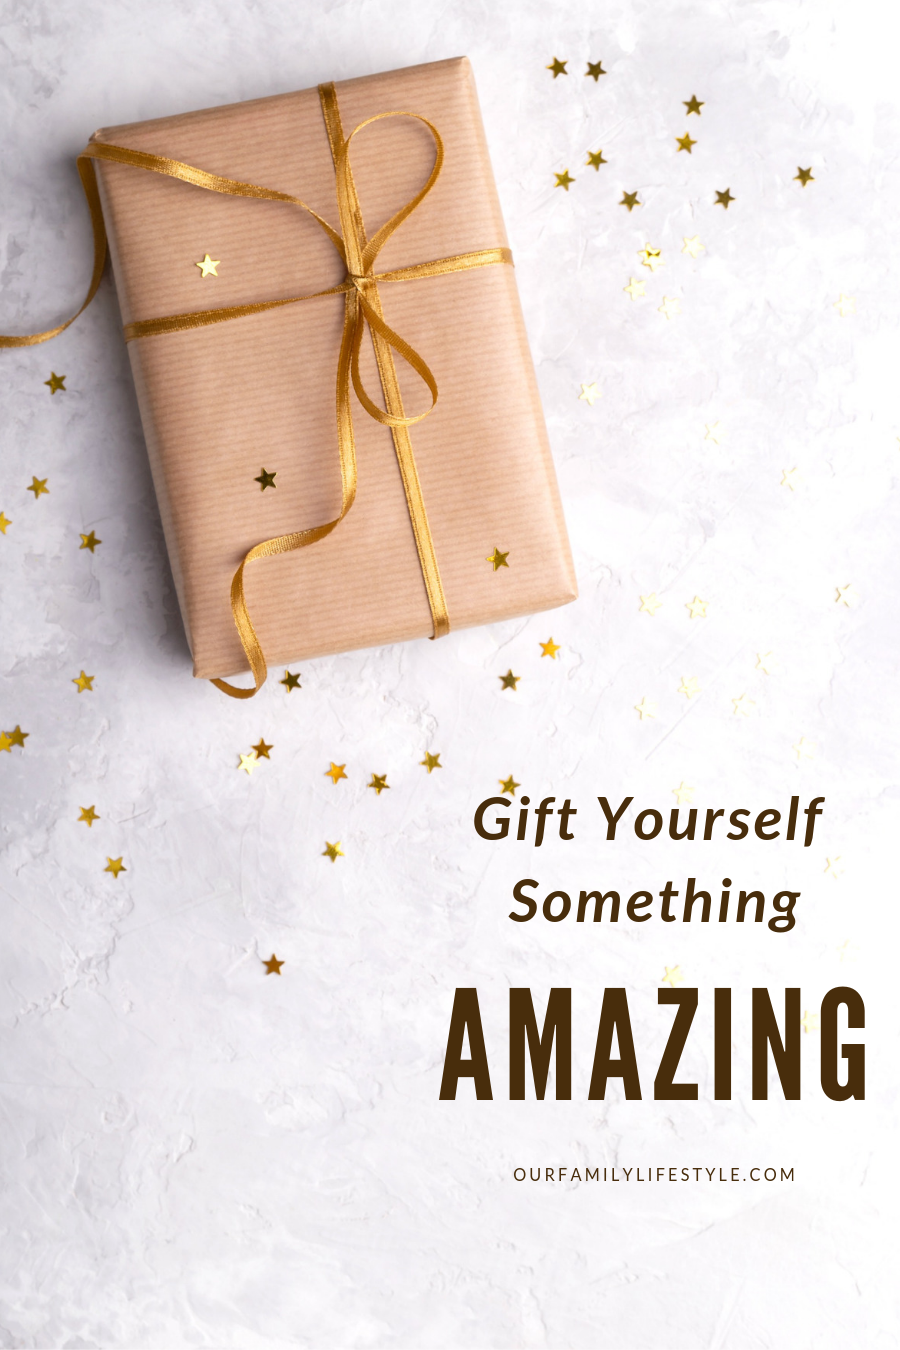 Gift Yourself Something Amazing